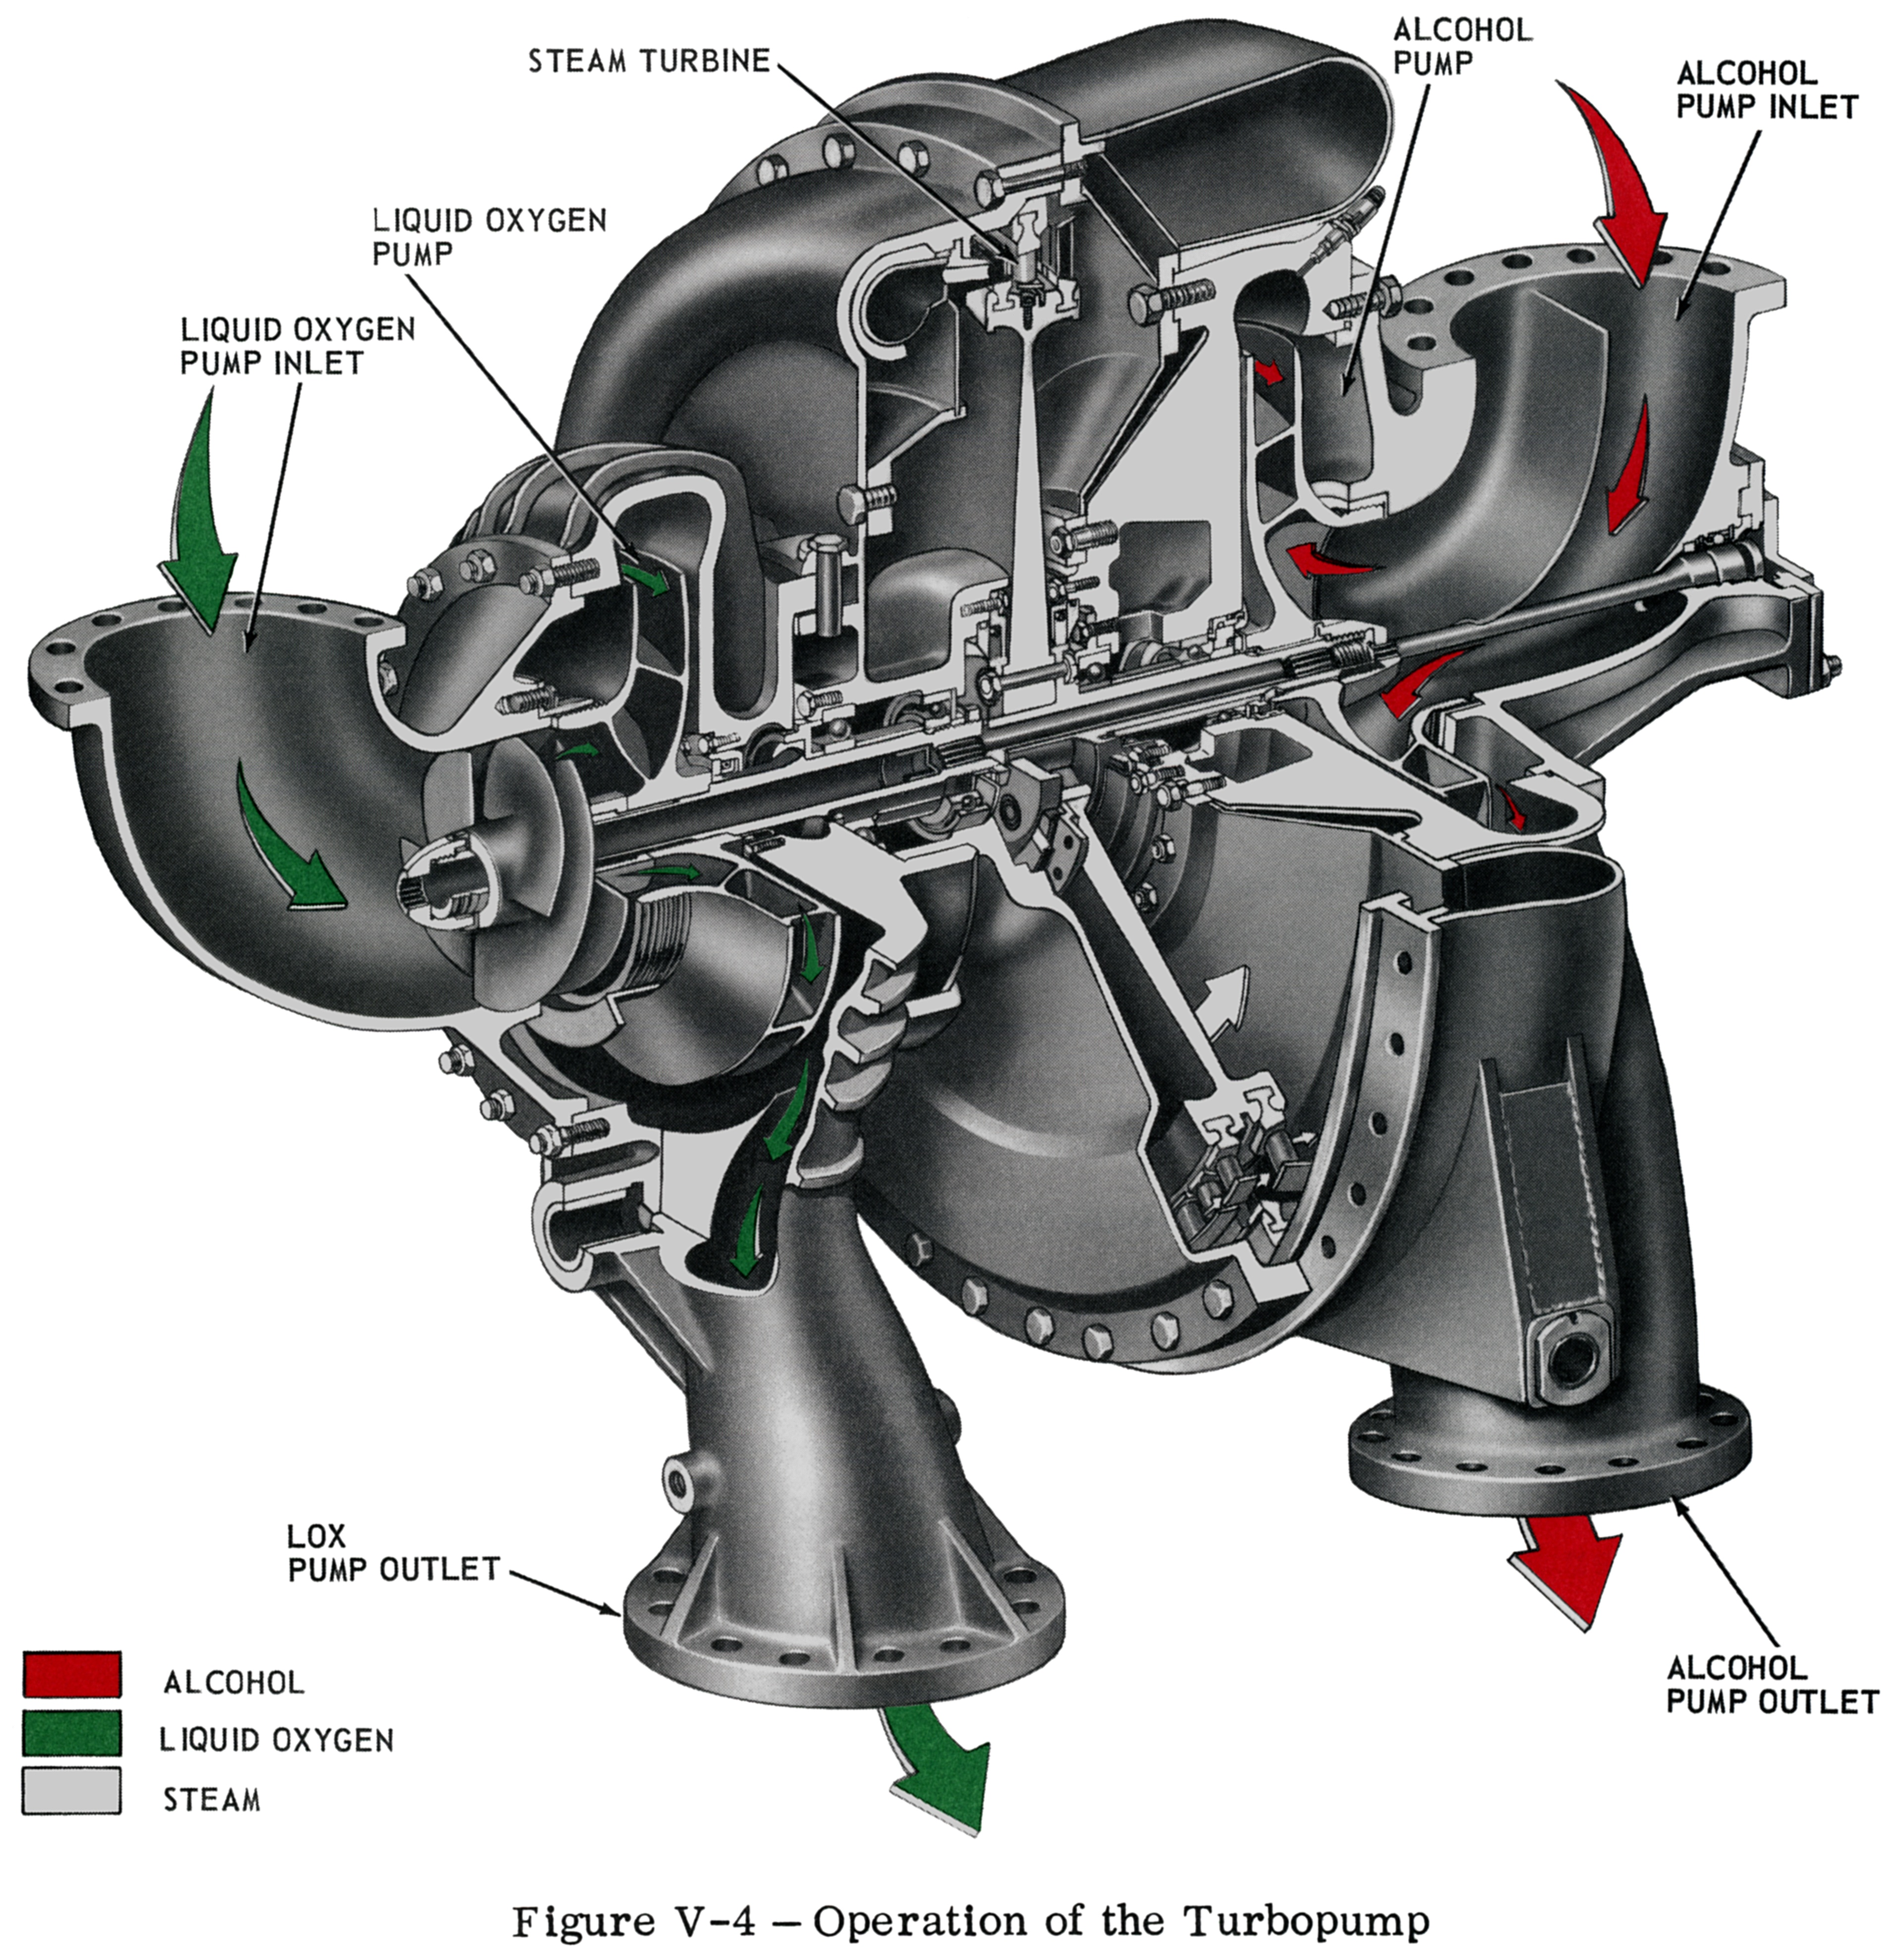 Redstone A 7 Rocket Engine Turbopump On This Turbocharger Diagram You Can See How The Impeller Connects Missile Cut Away